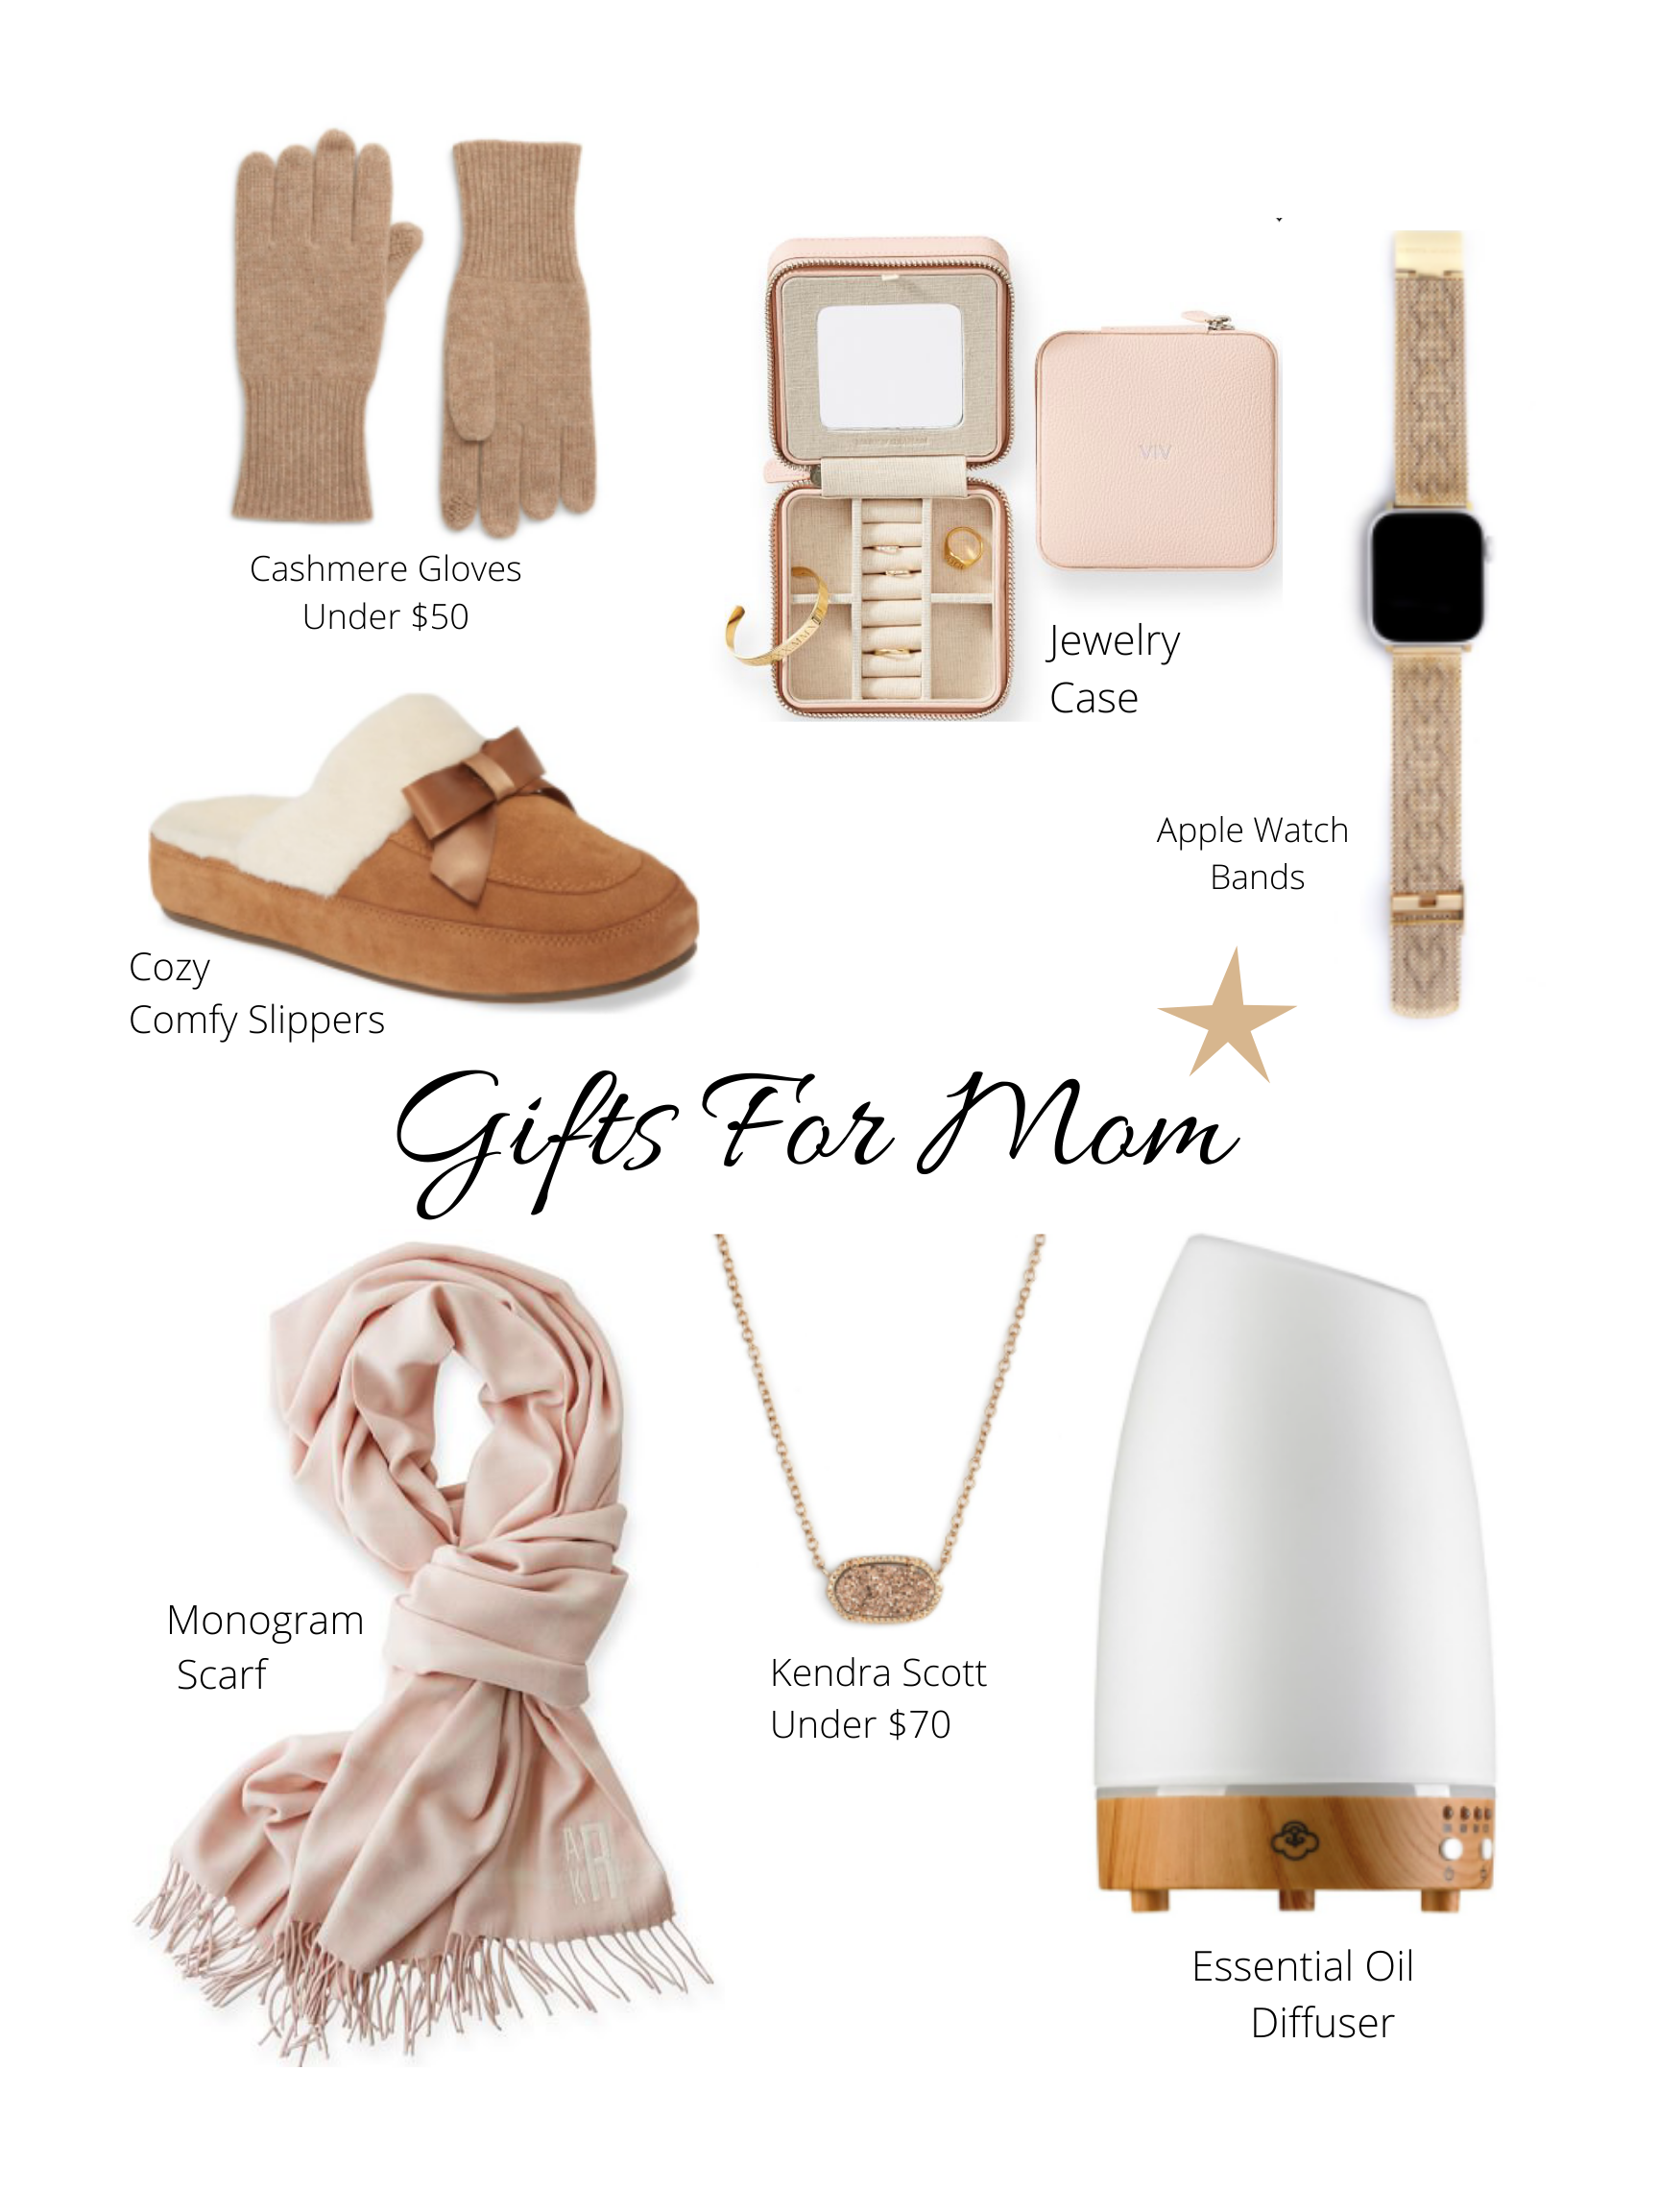 Gifts Ideas For Mom & Dad